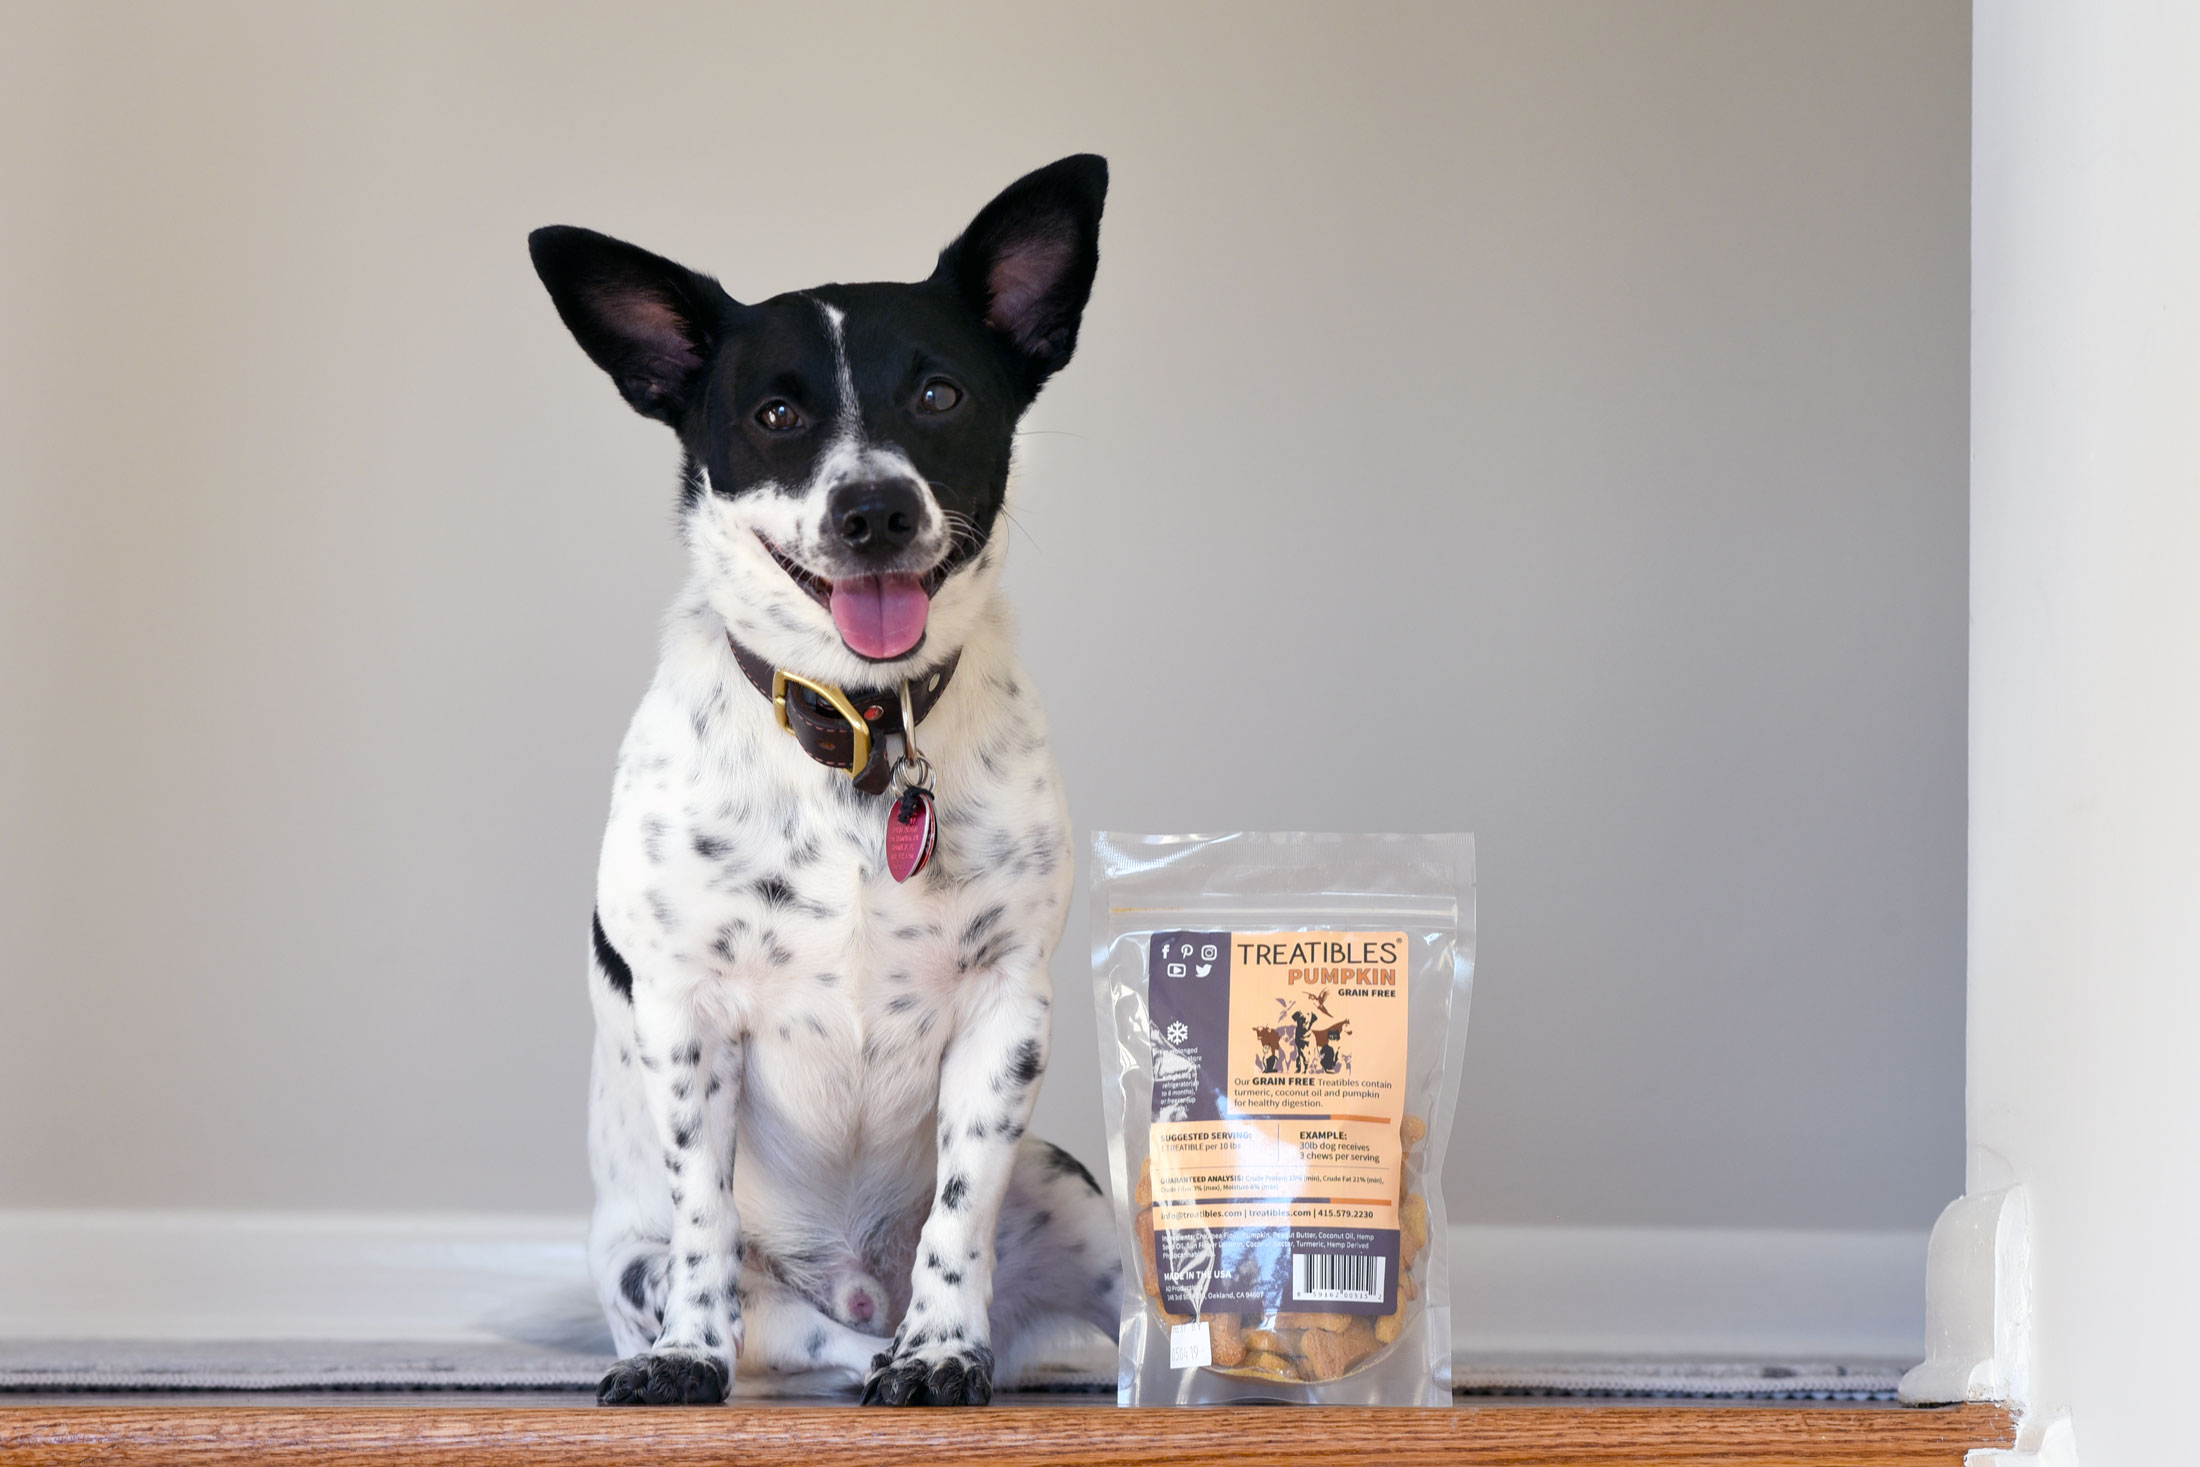 Have you heard the buzz about using hemp for dogs? Learn more about CBD for reactive dogs and how Treatibles is helping Henry!